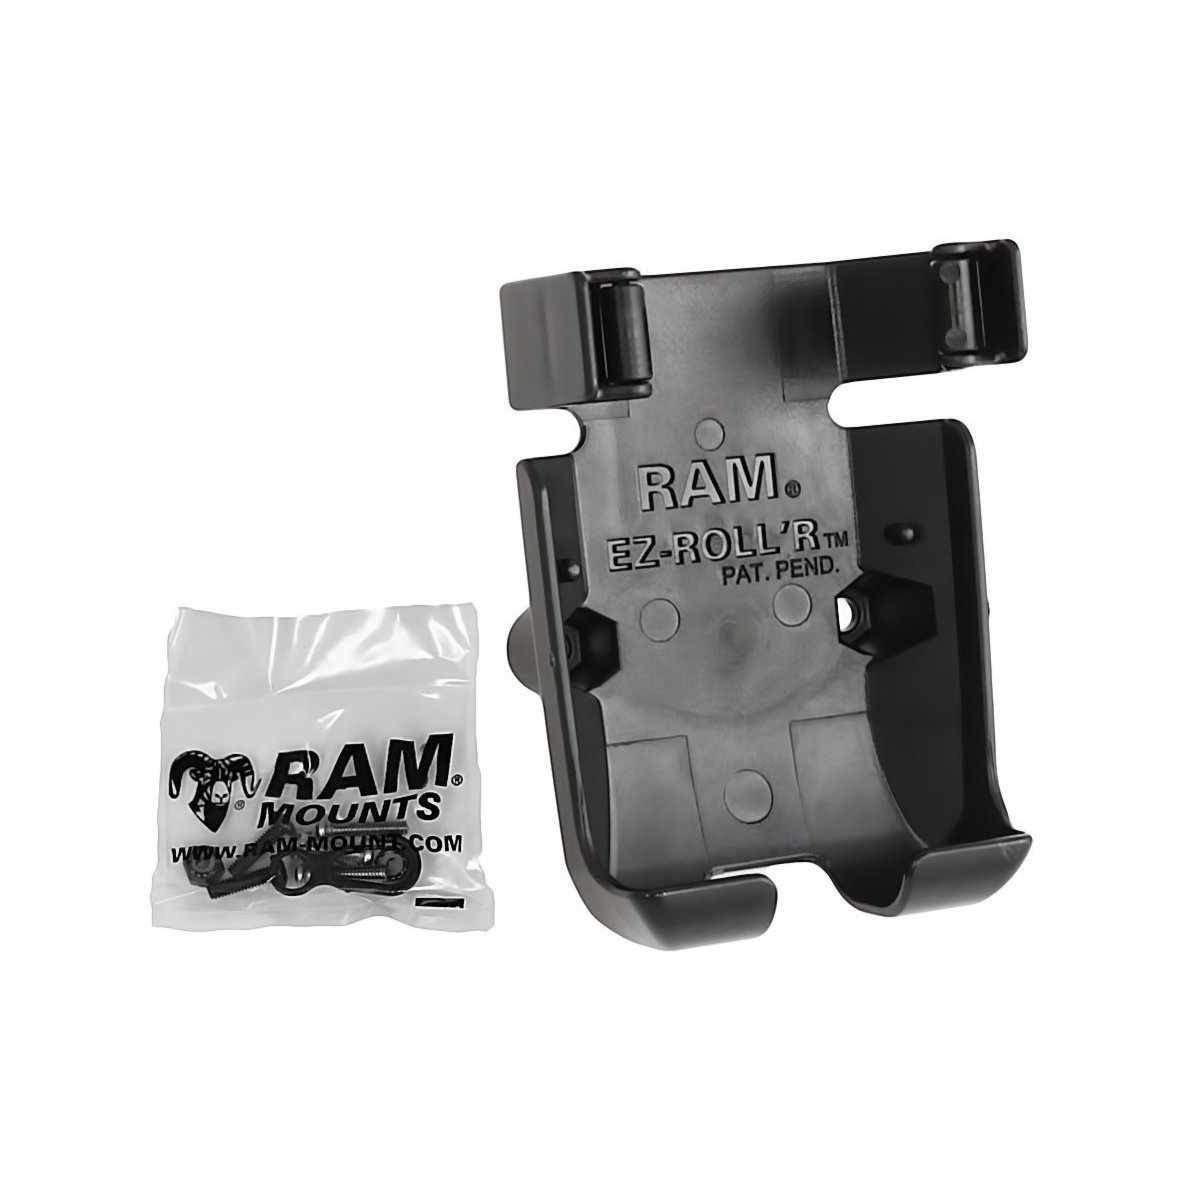 RAM Holder for Garmin GPSMAP 78 (RAM-HOL-GA40U)-Modest Mounts